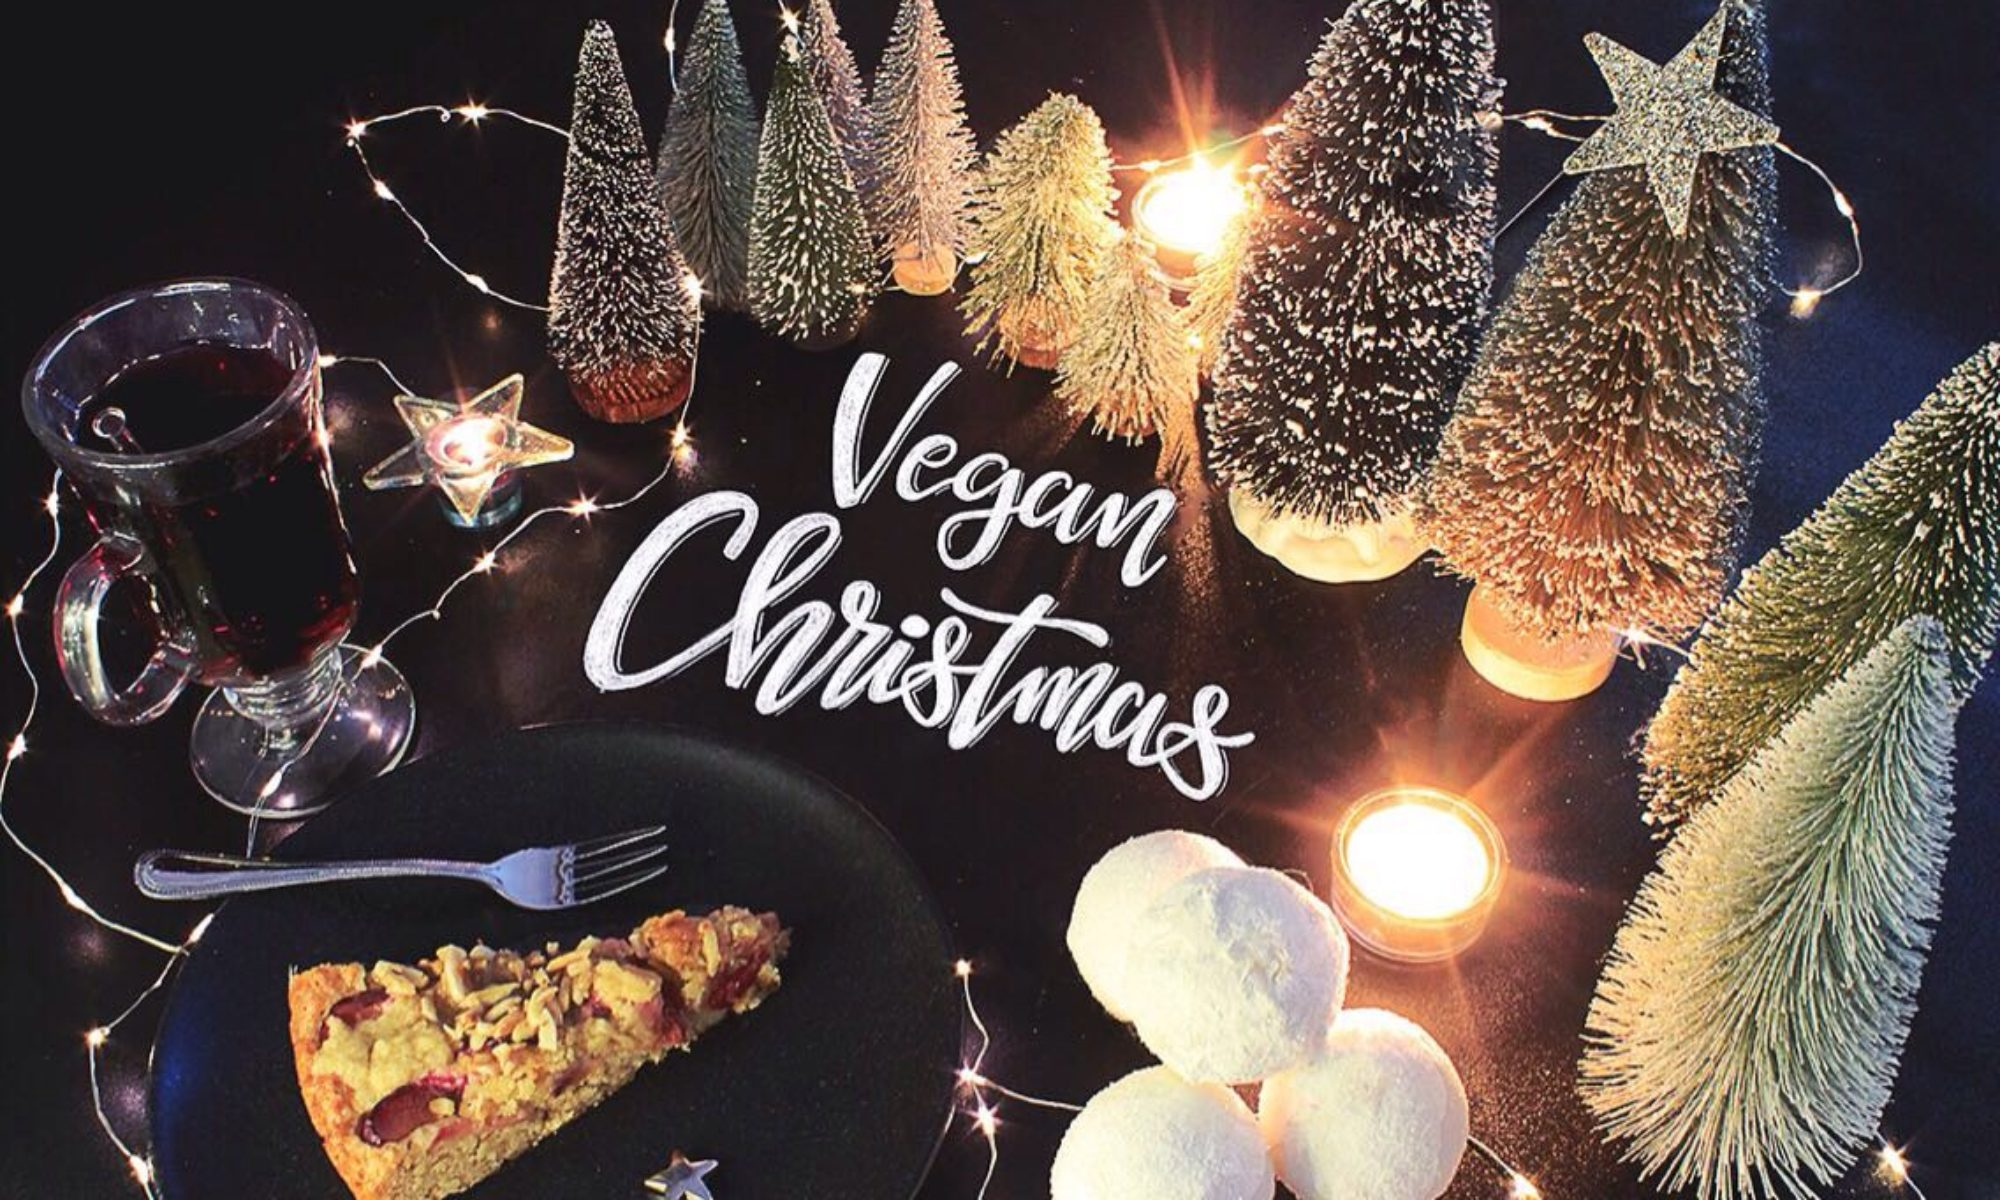 Vegan Christmas